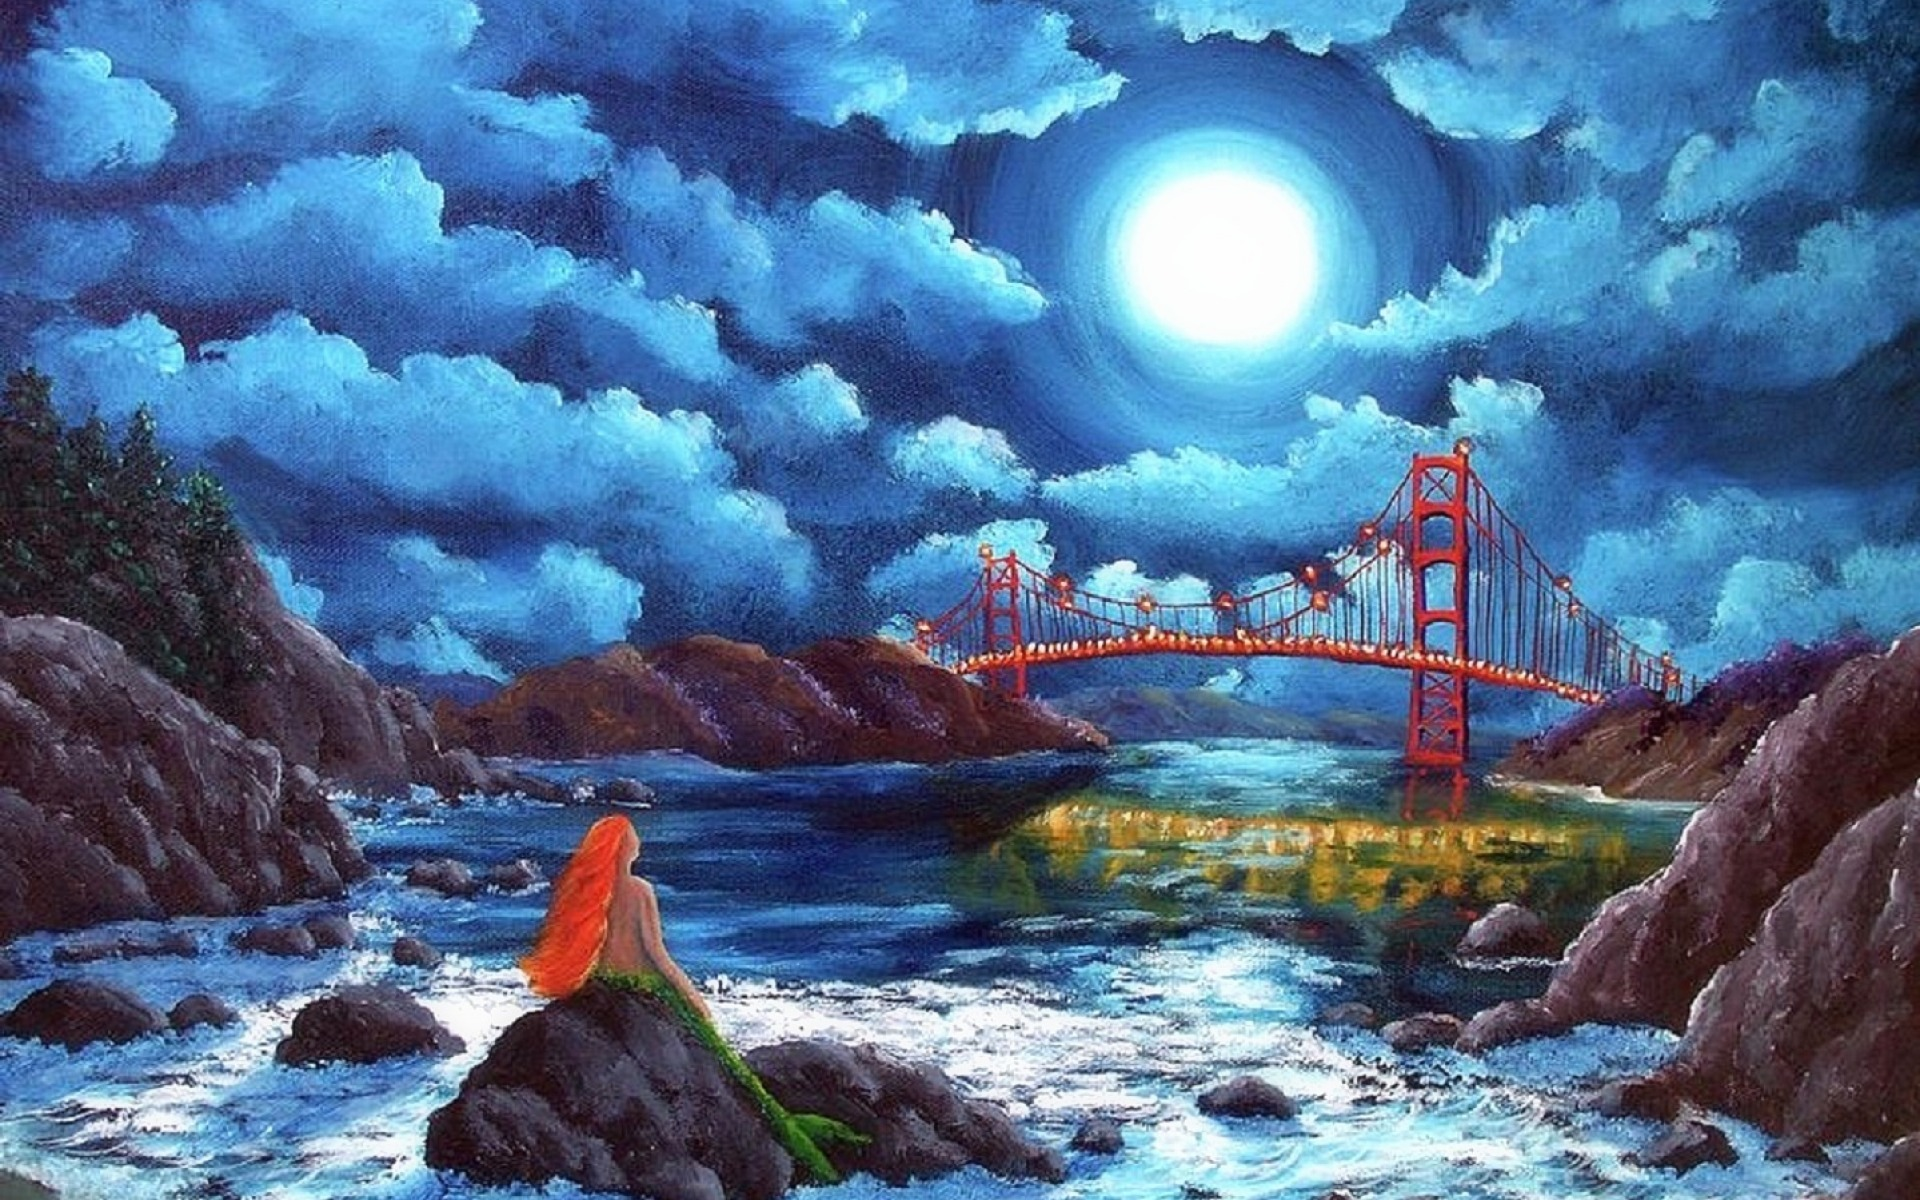 Fall Painting Wallpapers Puente Golden Gate De La Sirena Fondos De Pantalla